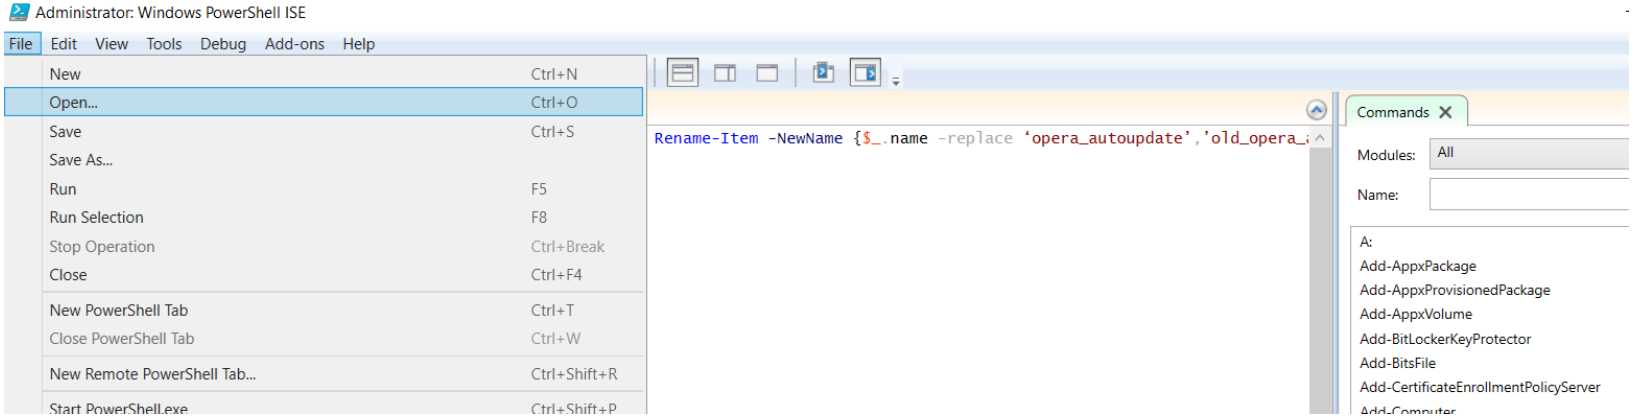 Run Remote Powershell Script as Administrator. Select Open from the File menu to load your script